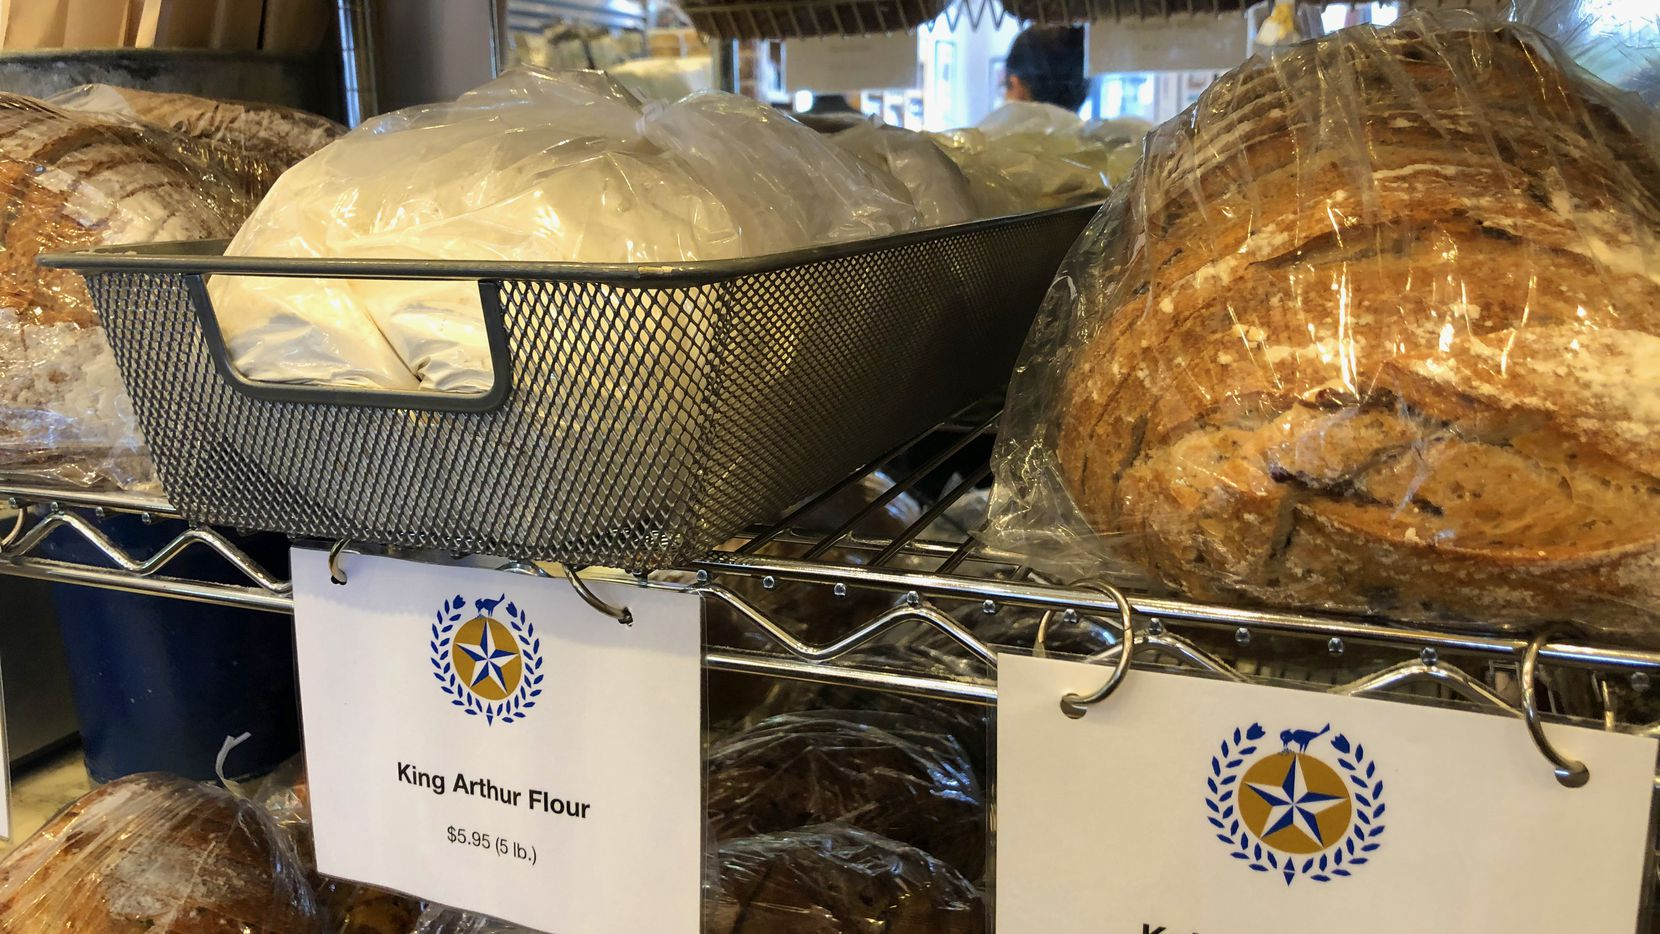 Empire Baking Co. is selling 5-pound sacks of all-purpose flour along with a more limited selection of breads at its Inwood Village retail location.